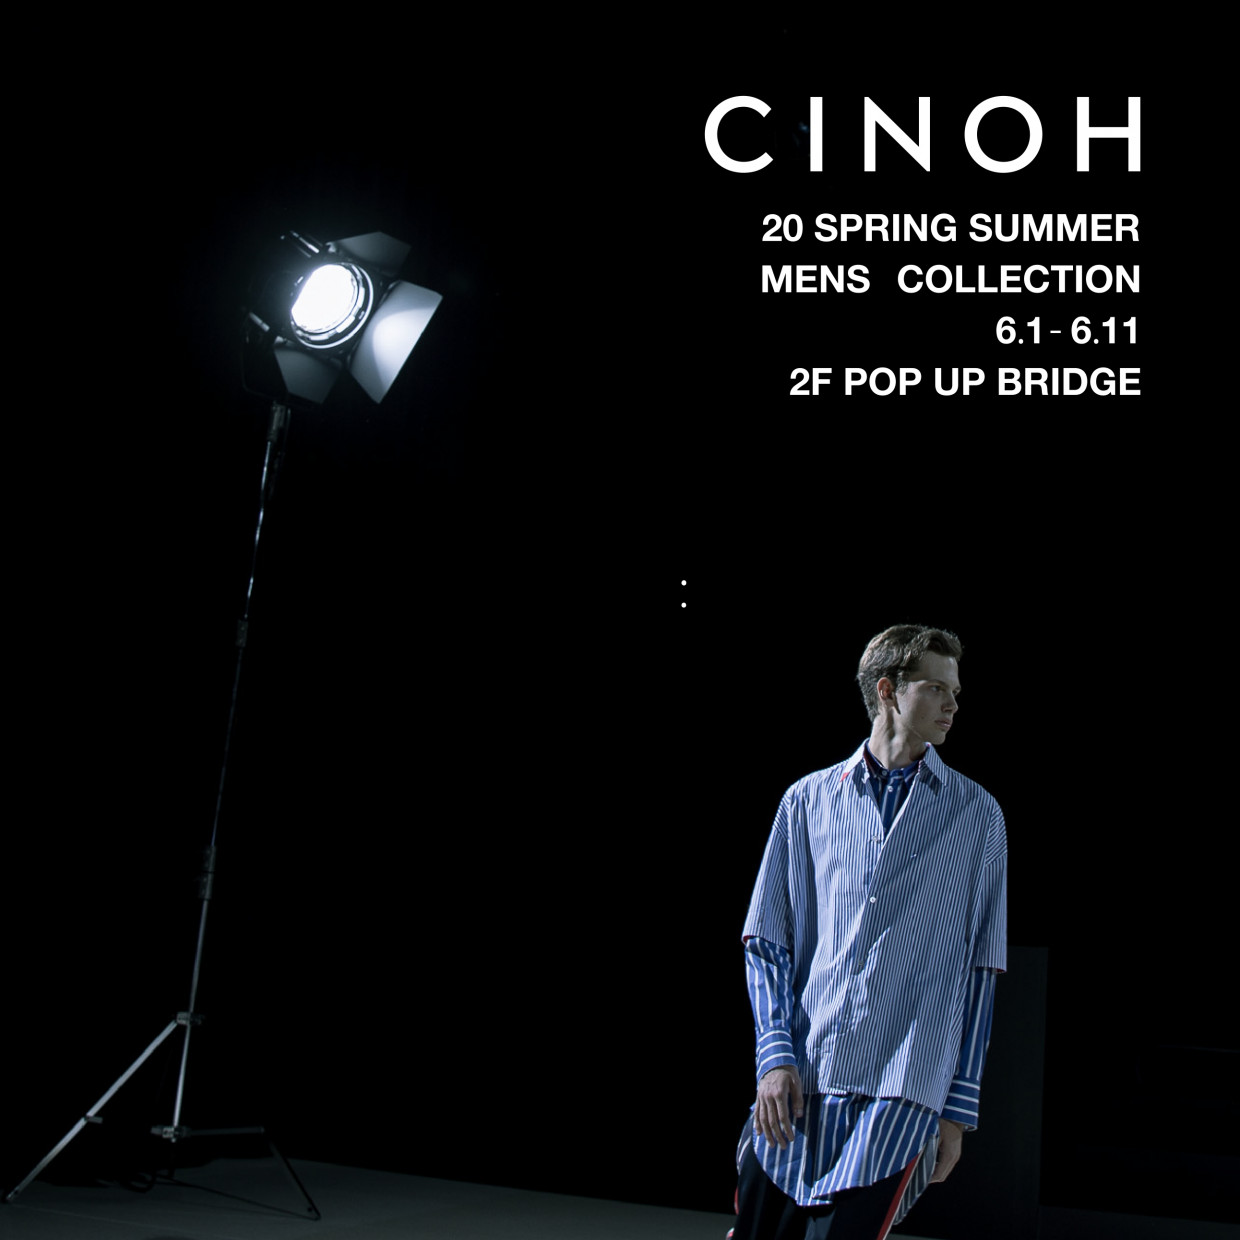 CINOH 20 SPRING SUMMER MENS COLLECTION